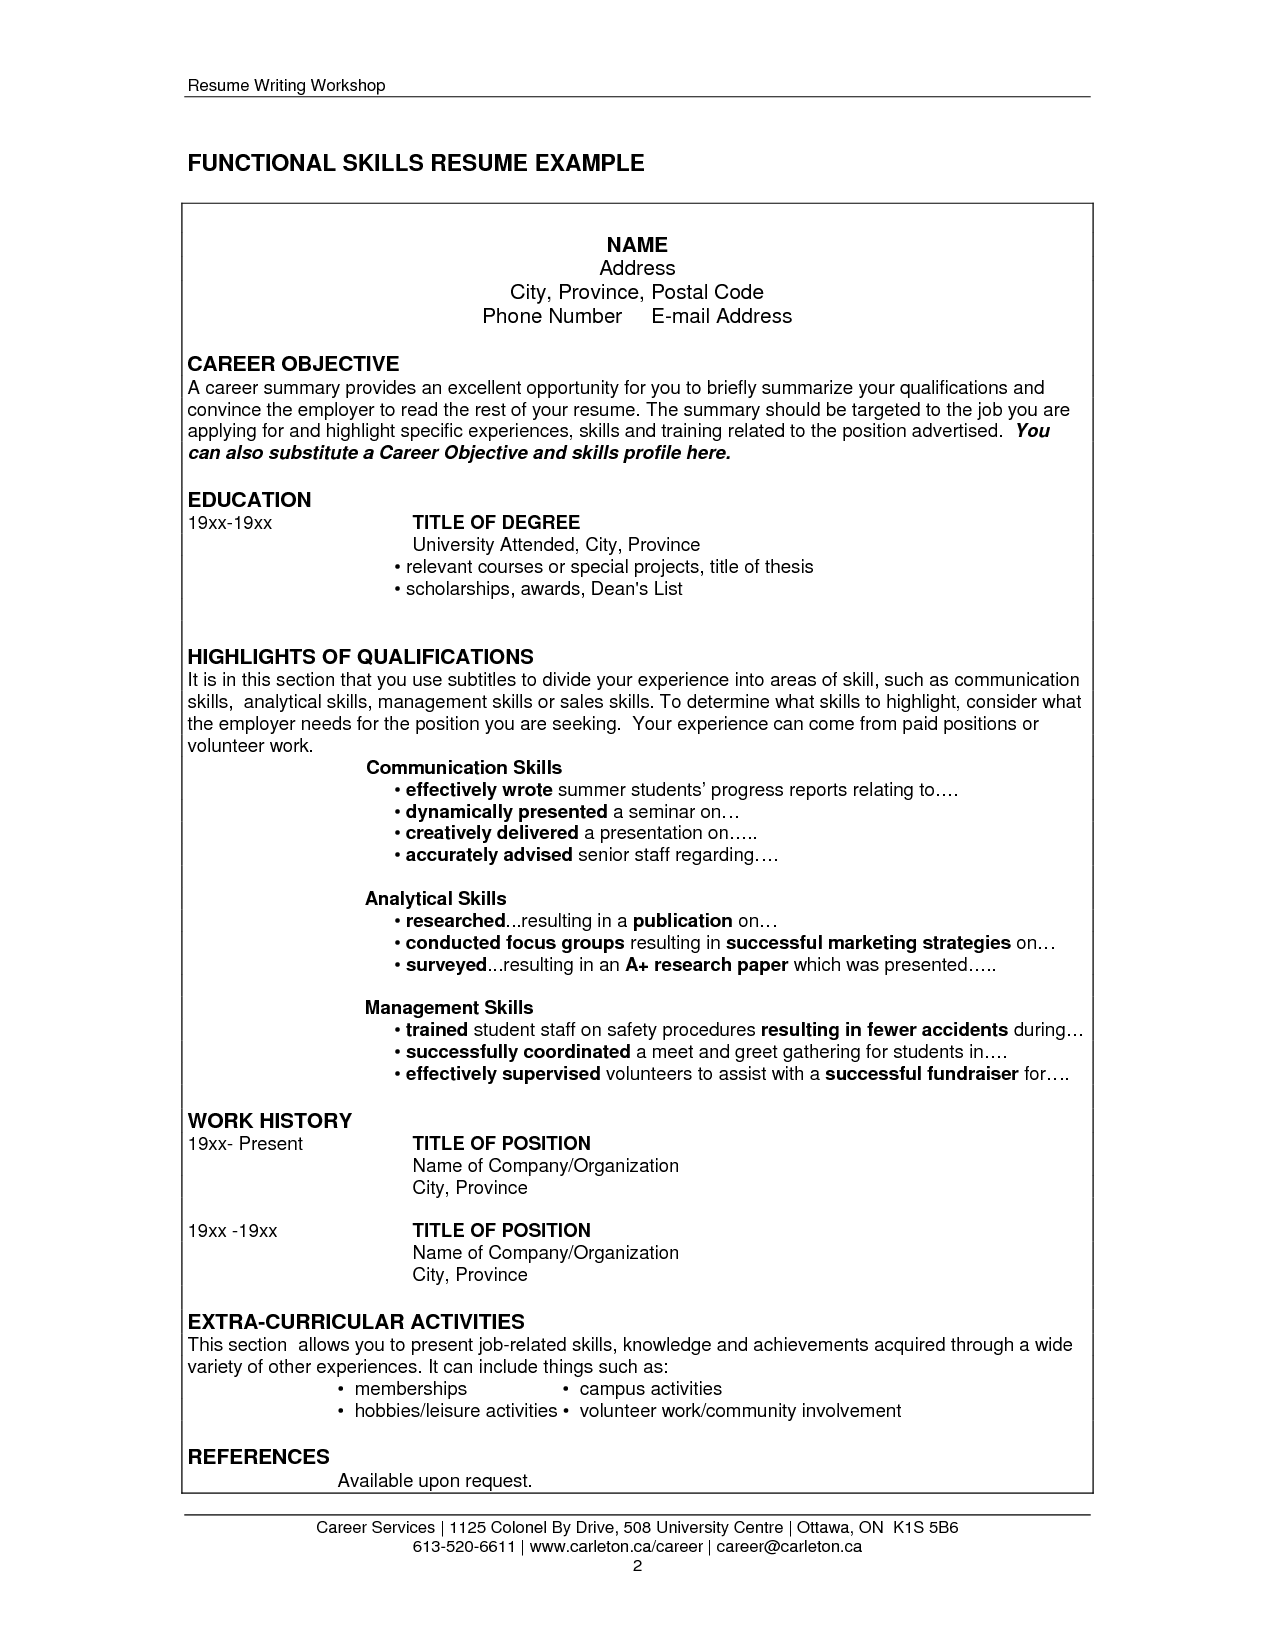 Formal Resume Template Image Result For Skills Resume Format  Business  Pinterest